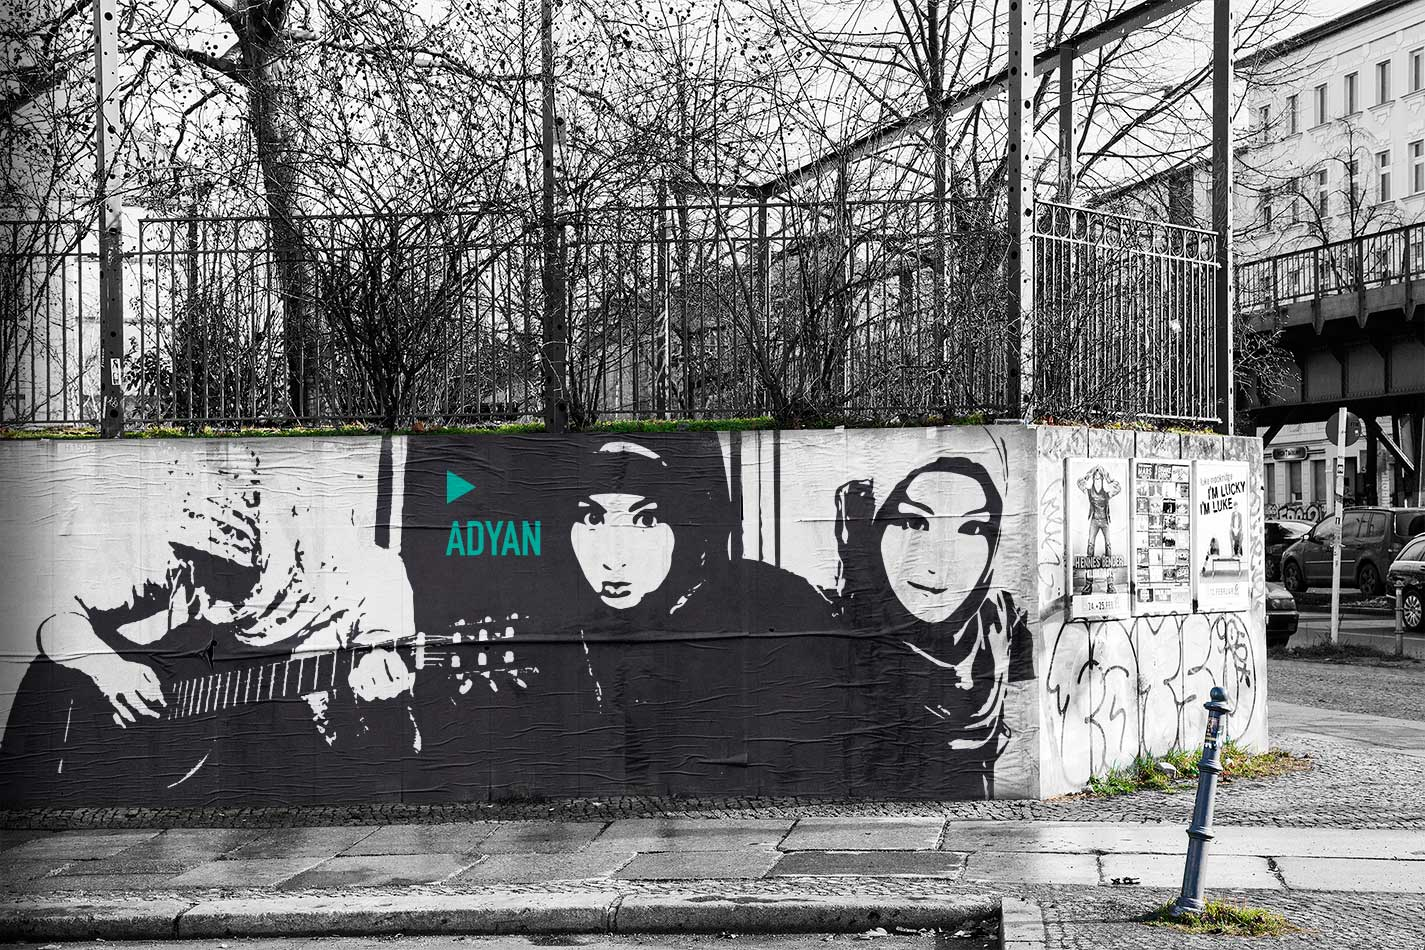 Foto/Illustration Kreuzberger Parkmauer mit Adyan als Paste-Up